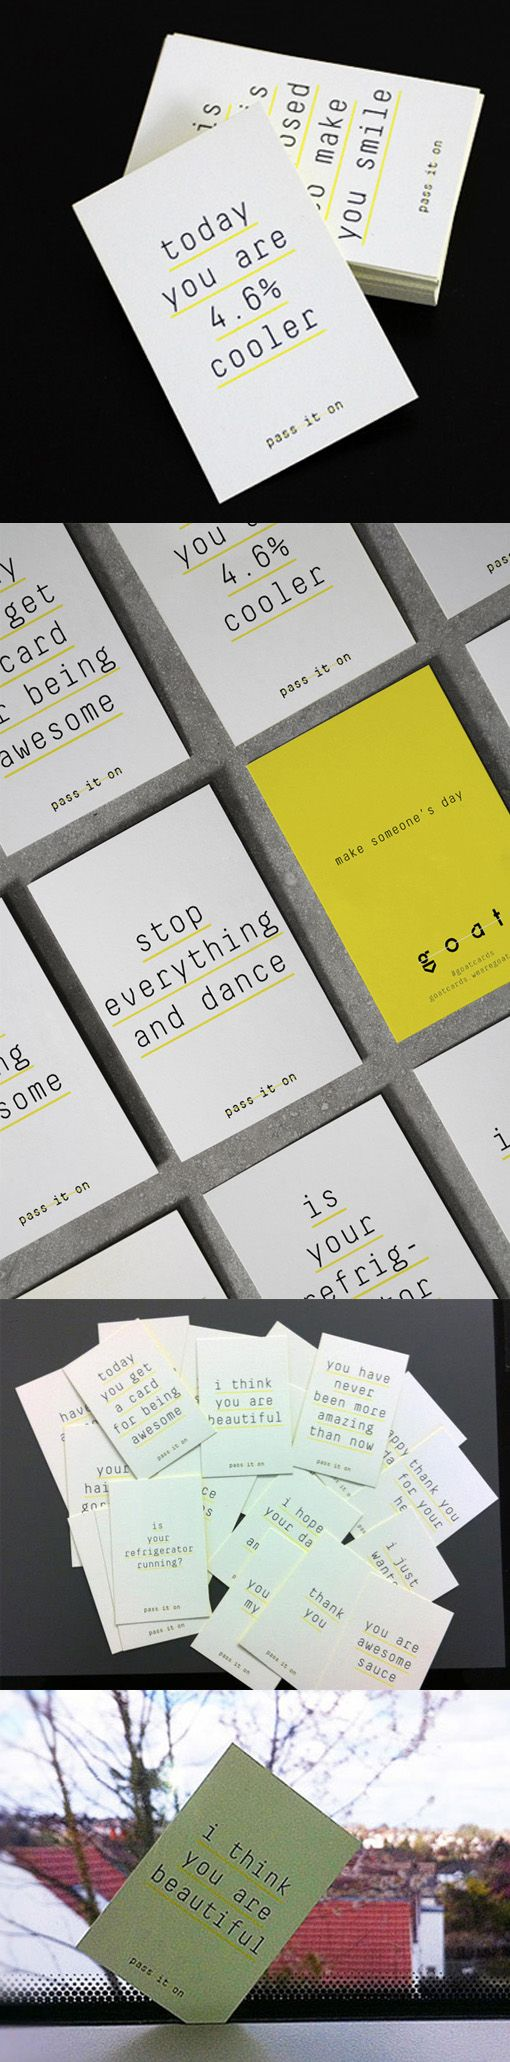 189 best Creative business cards images on Pinterest | Creative ...